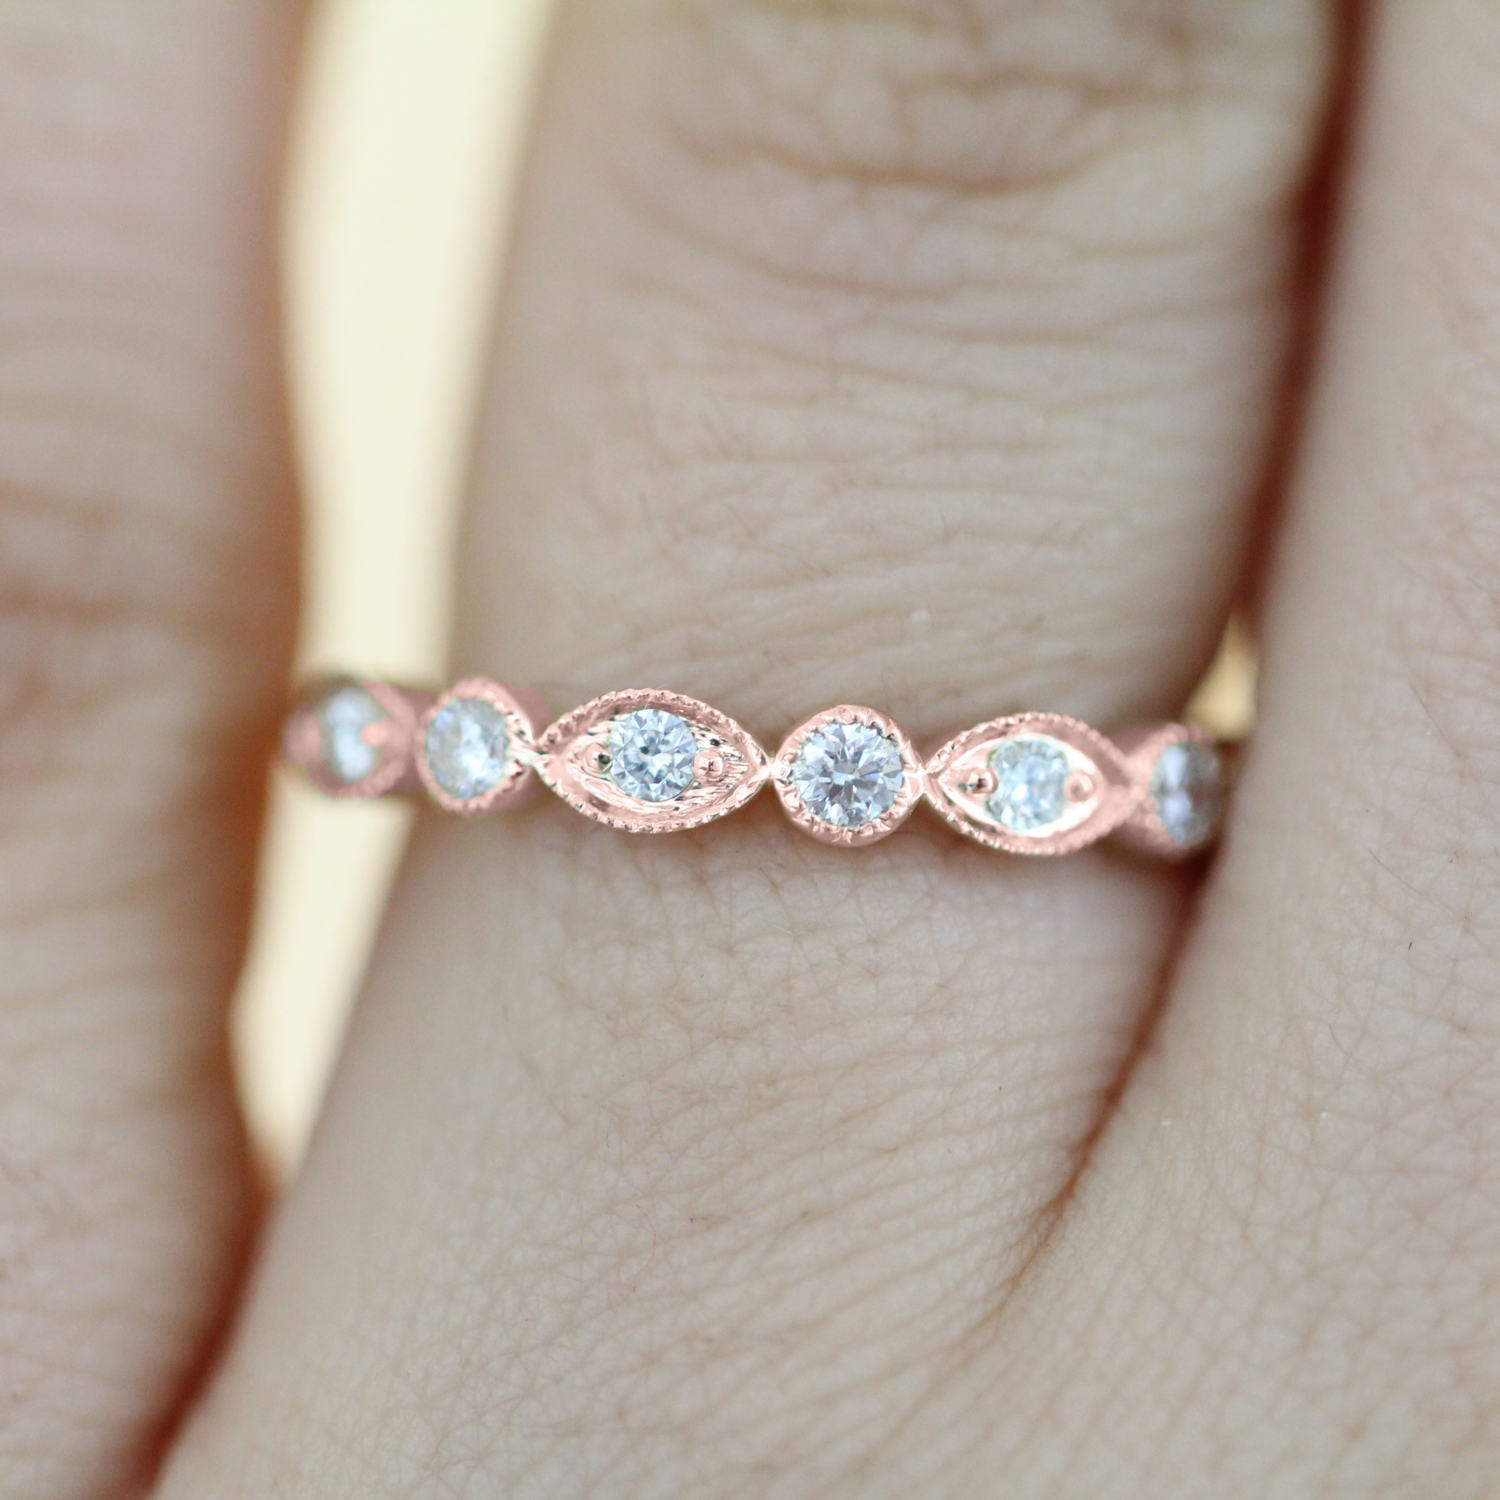 band amp wearing bands engagement full jewelry of rings fine diamond stock ring with new wedding